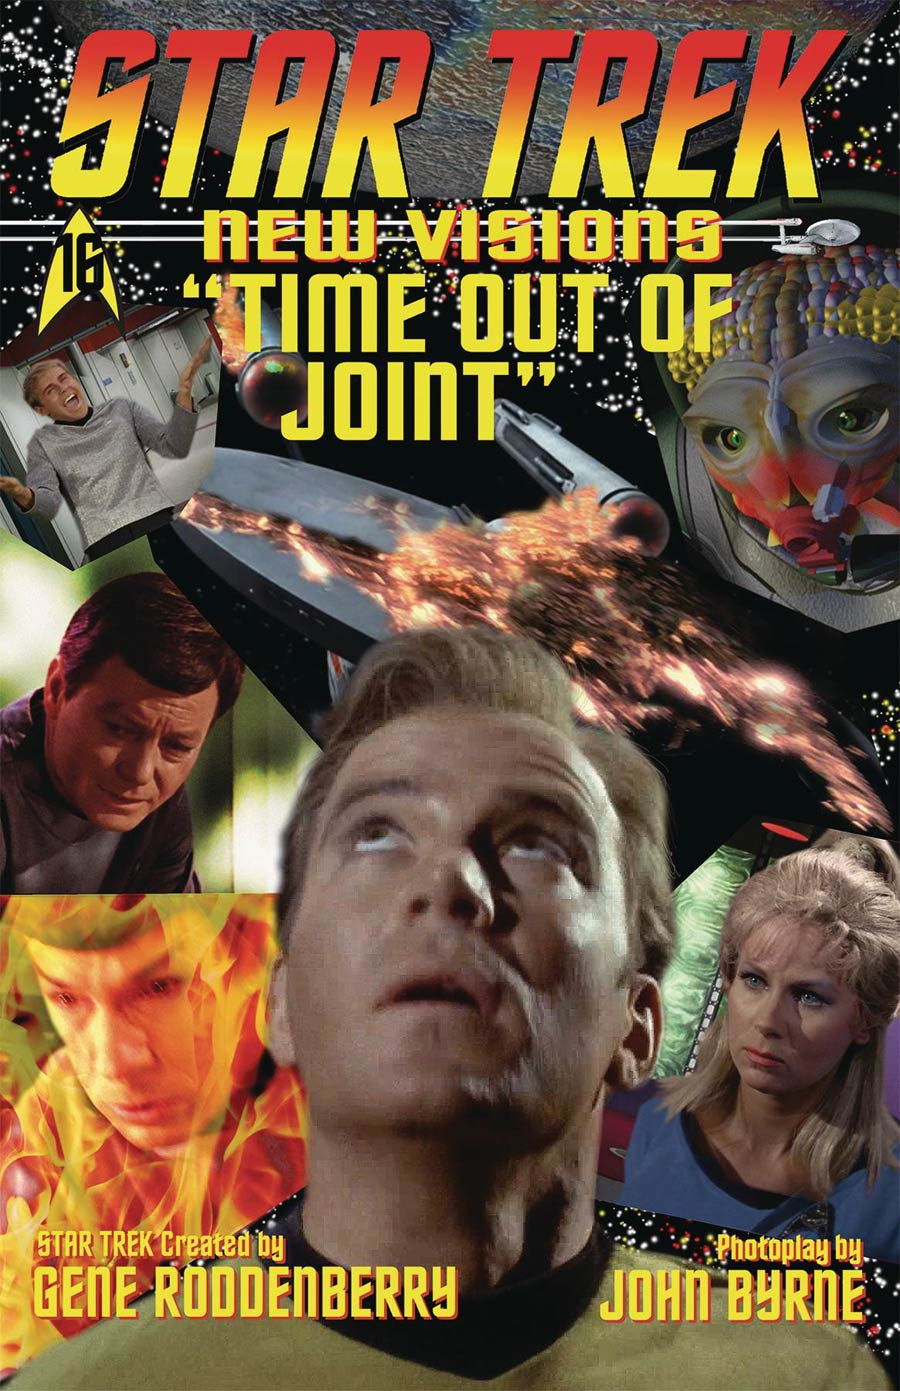 Star Trek New Visions #14 Time Out Of Joint